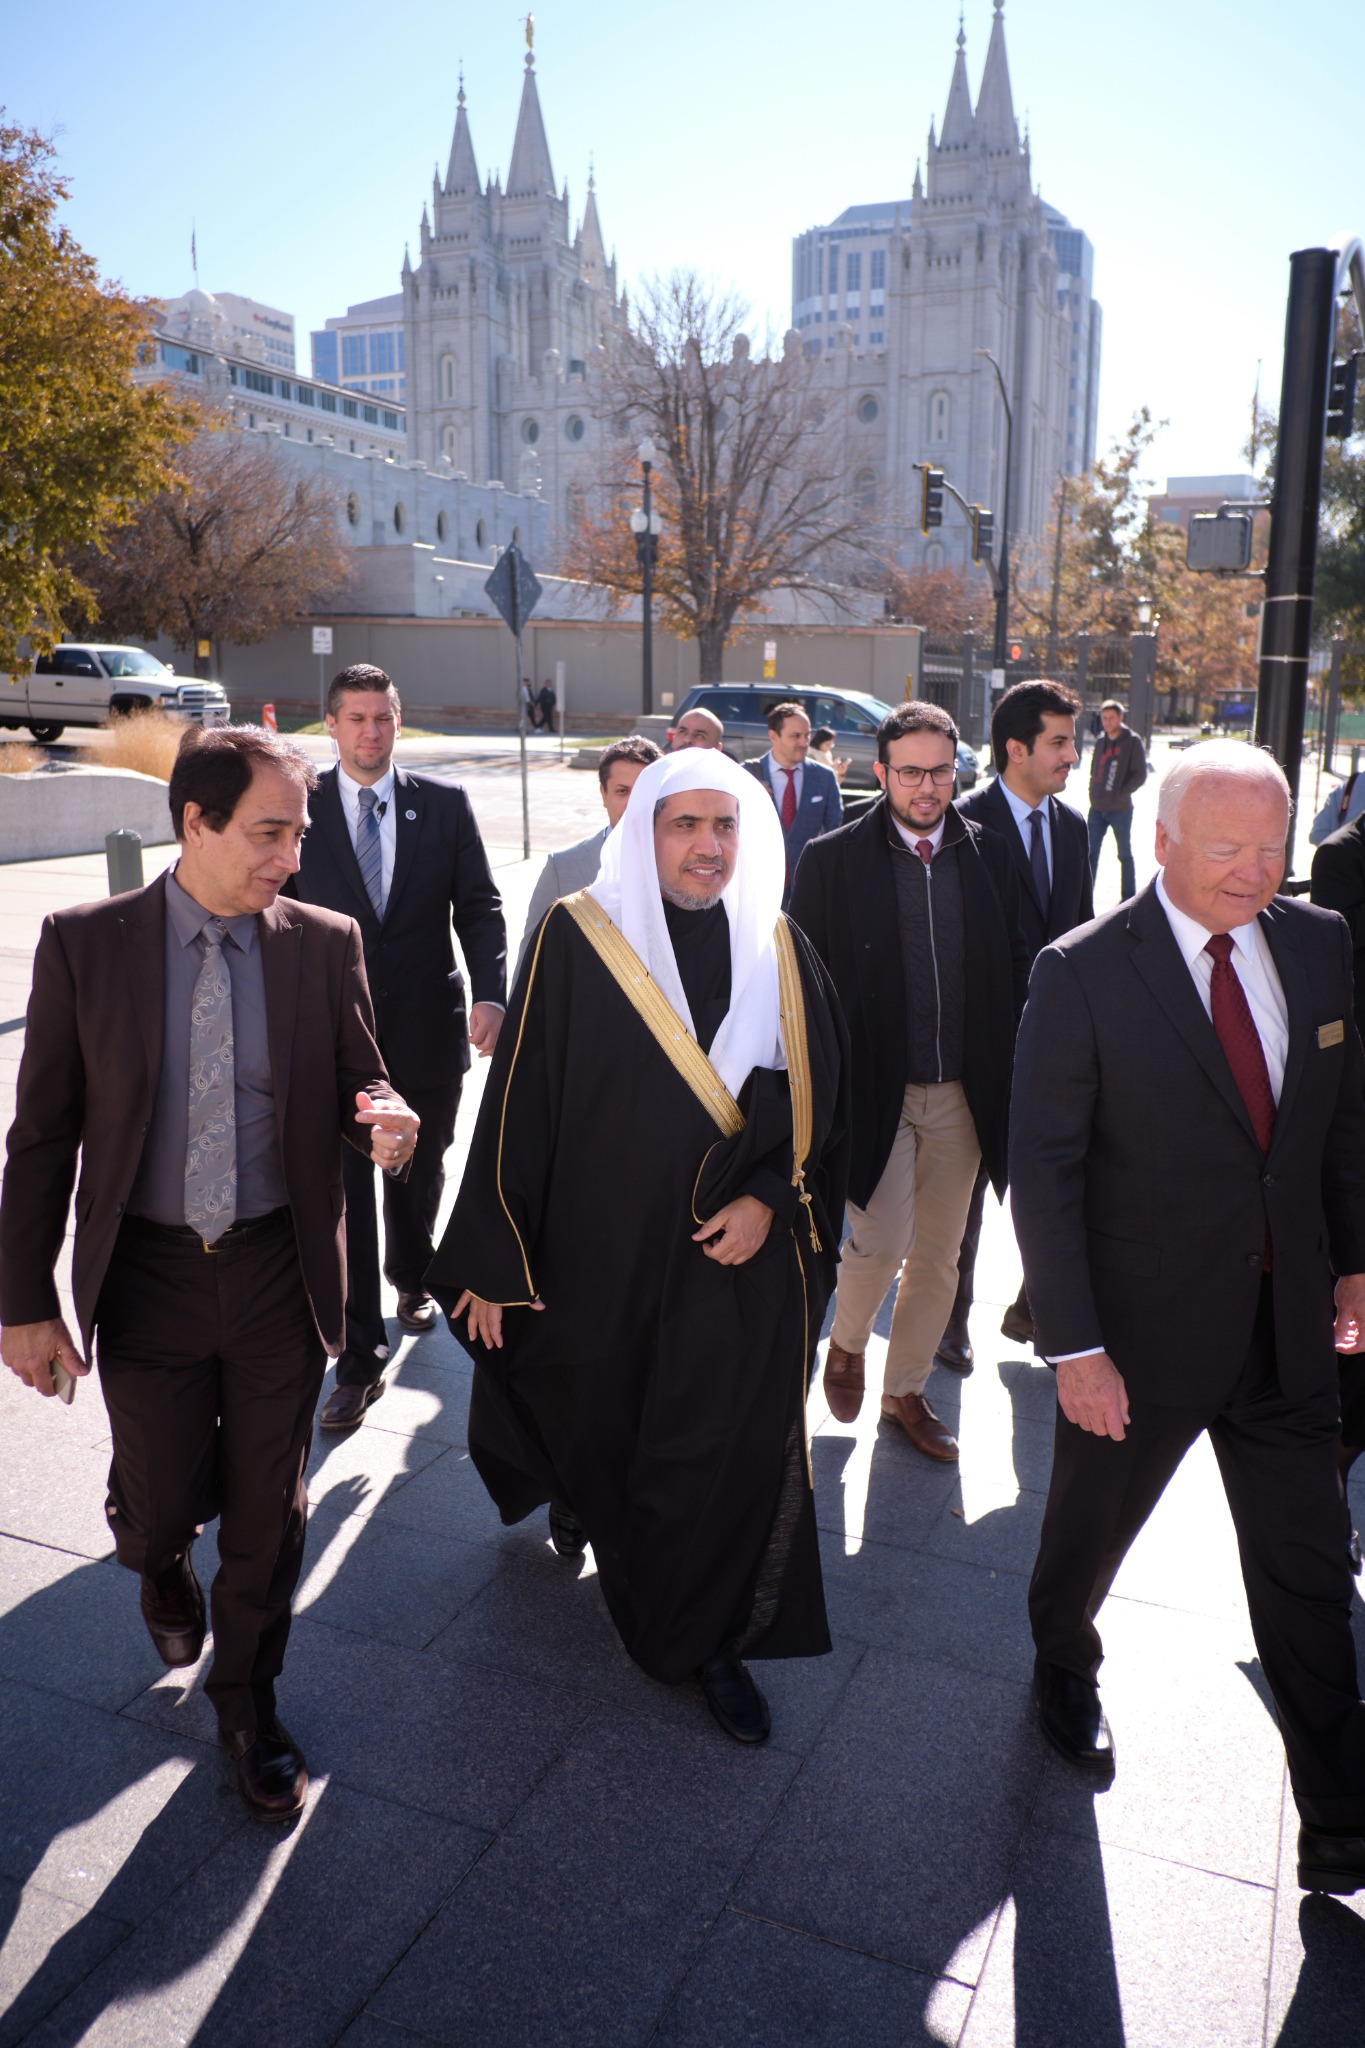 His Excellency Dr. Mohammad Al-Issa, secretary-general of the Muslim World League, tours Temple Square in Salt Lake City on Nov. 5, 2019.